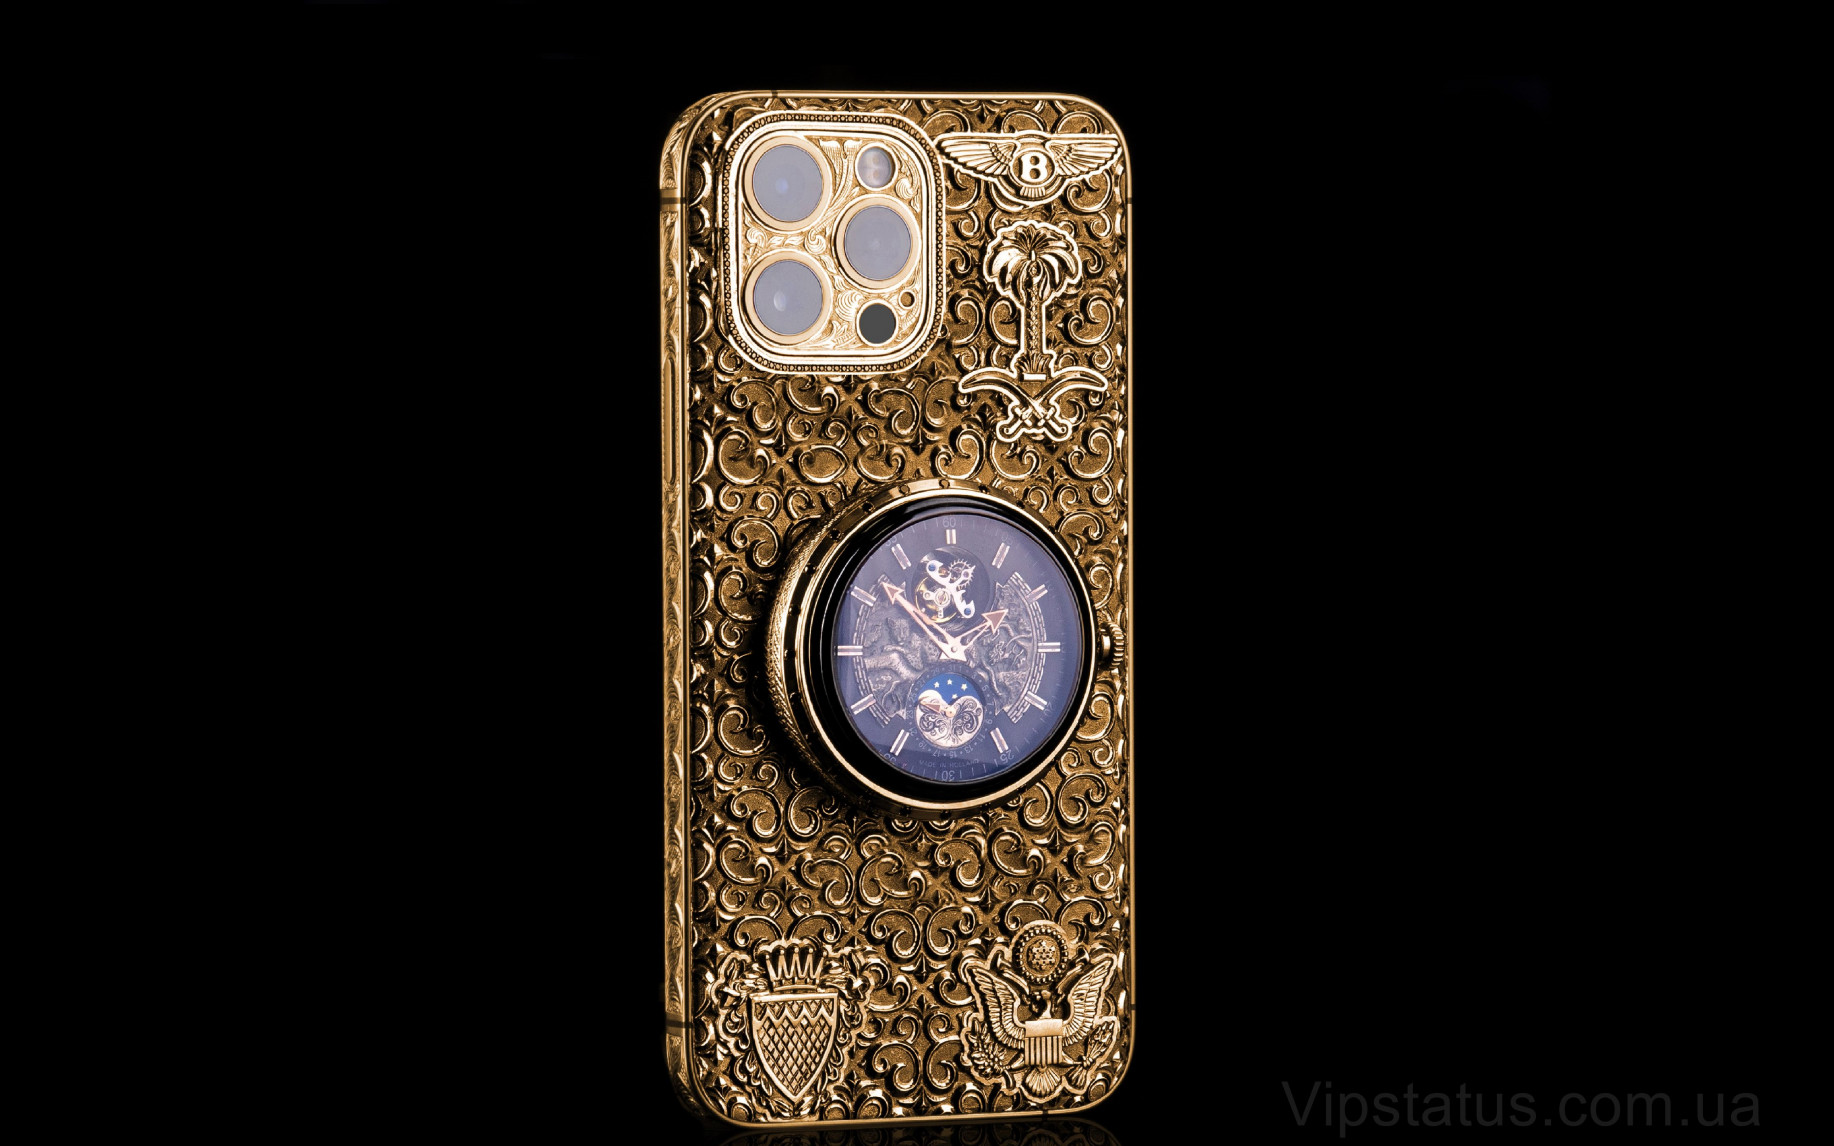 Elite Golden Ring of Time IPHONE 12 PRO MAX 512 GB Golden Ring of Time IPHONE 12 PRO MAX 512 GB image 1